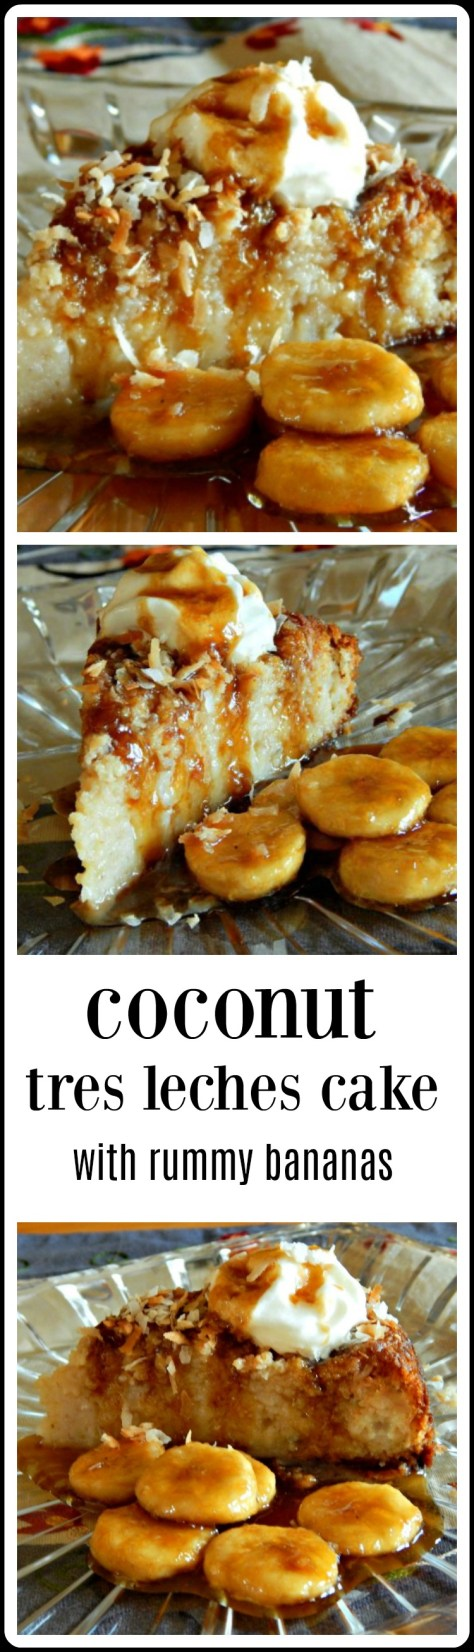 Coconut Tres Leches Cake with Caramelized Rum Bananas - you'll want to make this the day before - it's like magic and the flavors all meld together. It's Glorious!!